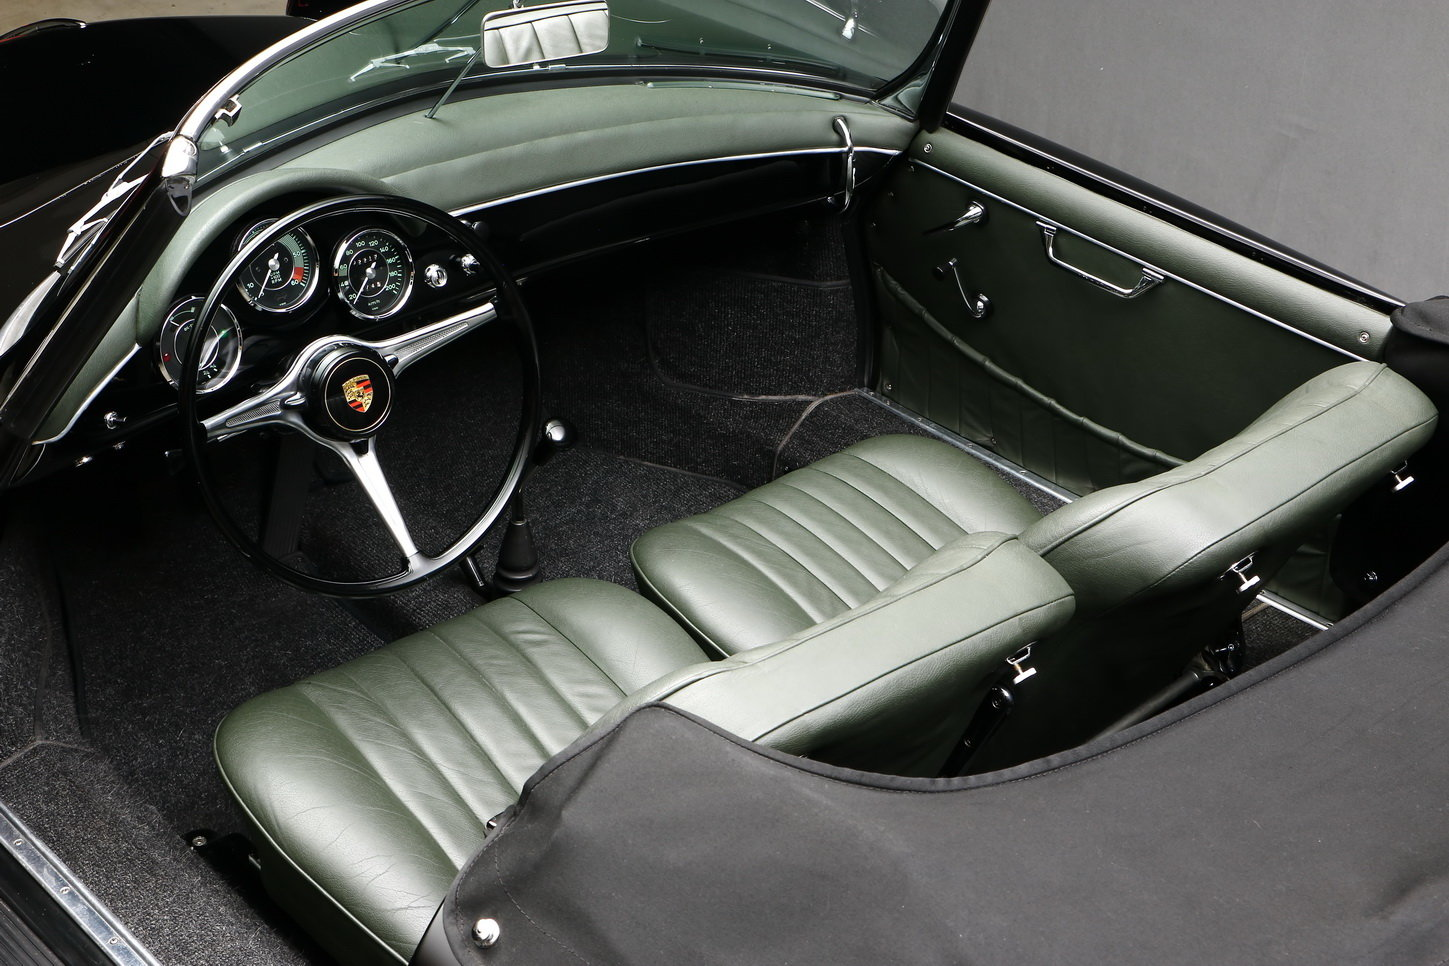 1961 Porsche 356 B T6 Roadster For Sale (picture 5 of 6)